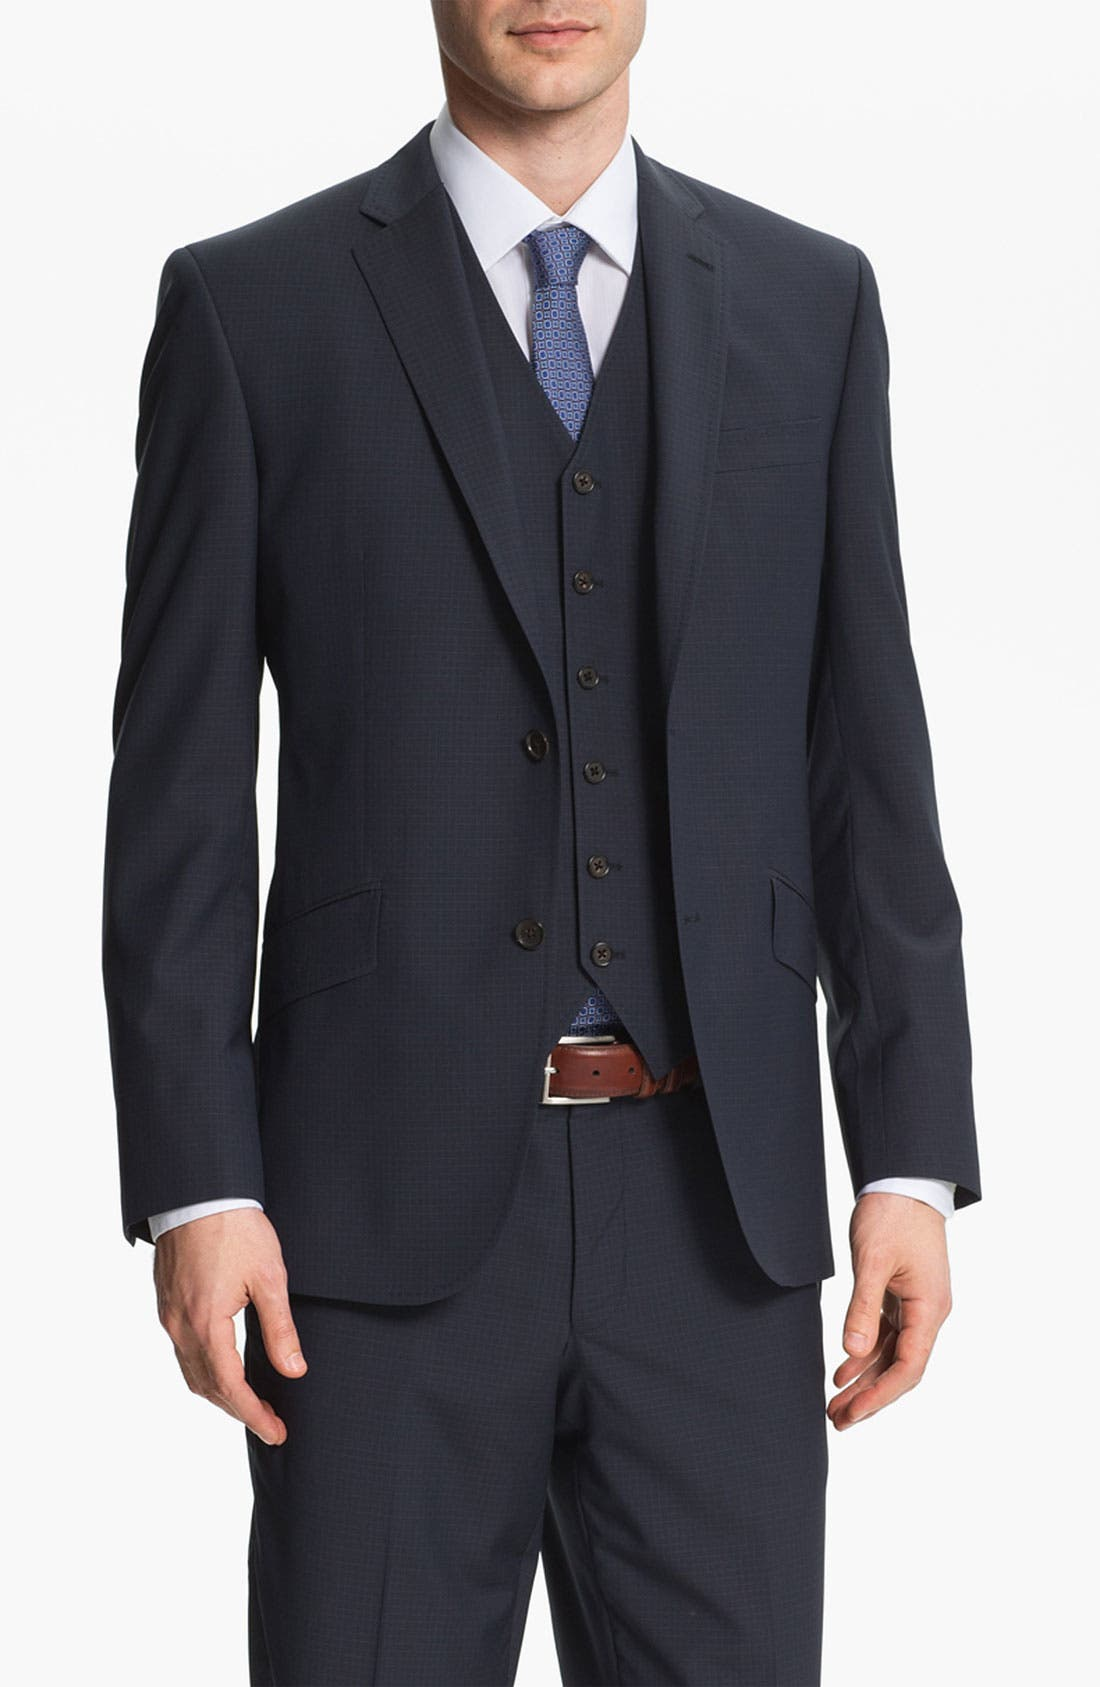 Alternate Image 1 Selected - Ted Baker London Trim Fit Three Piece Suit